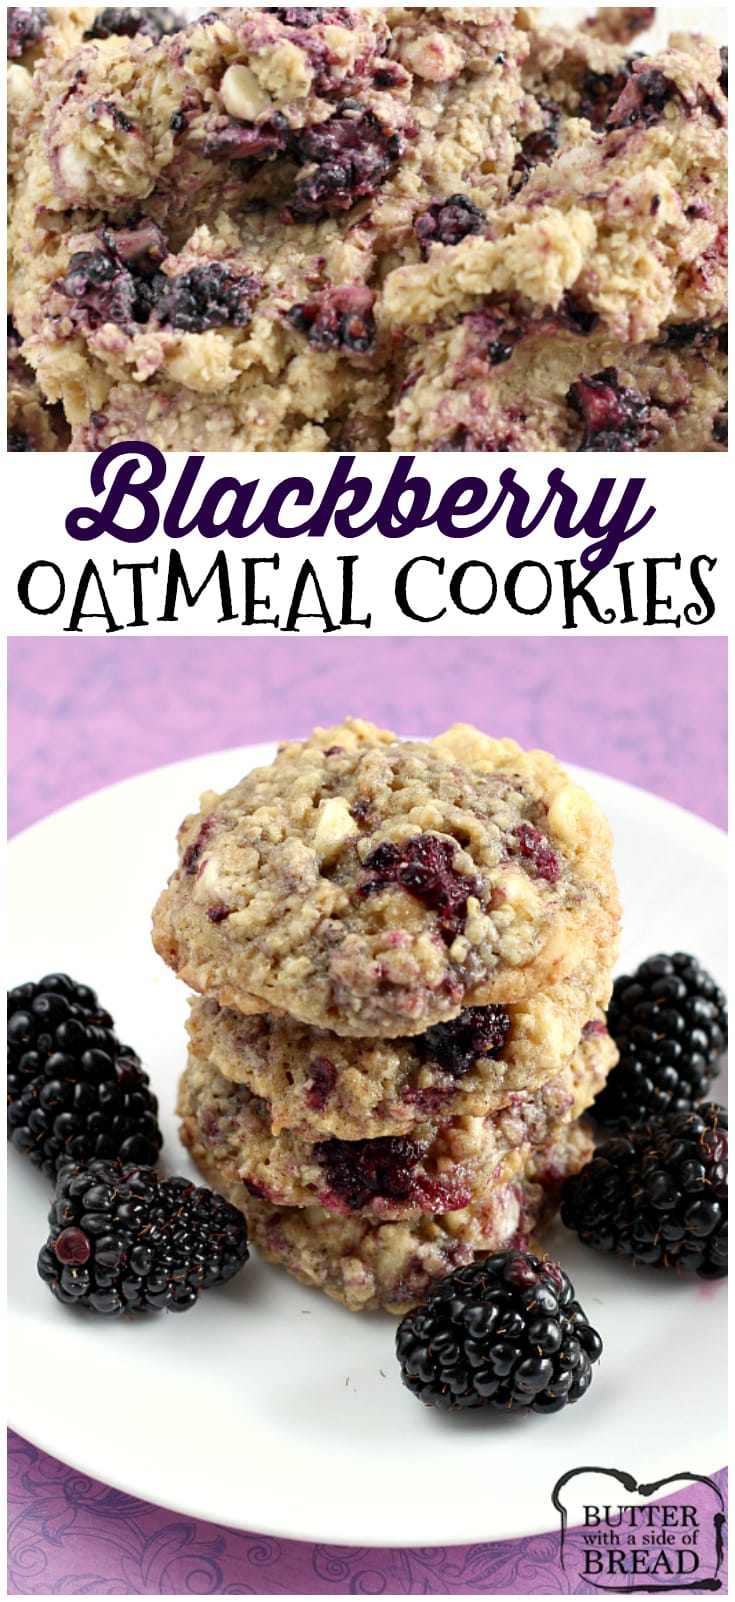 These Blackberry Oatmeal Cookies are absolutely amazing! The cookies are soft and chewy and the fresh blackberries add the most delicious flavor! Easy cookie recipe from Butter With A Side of Bread